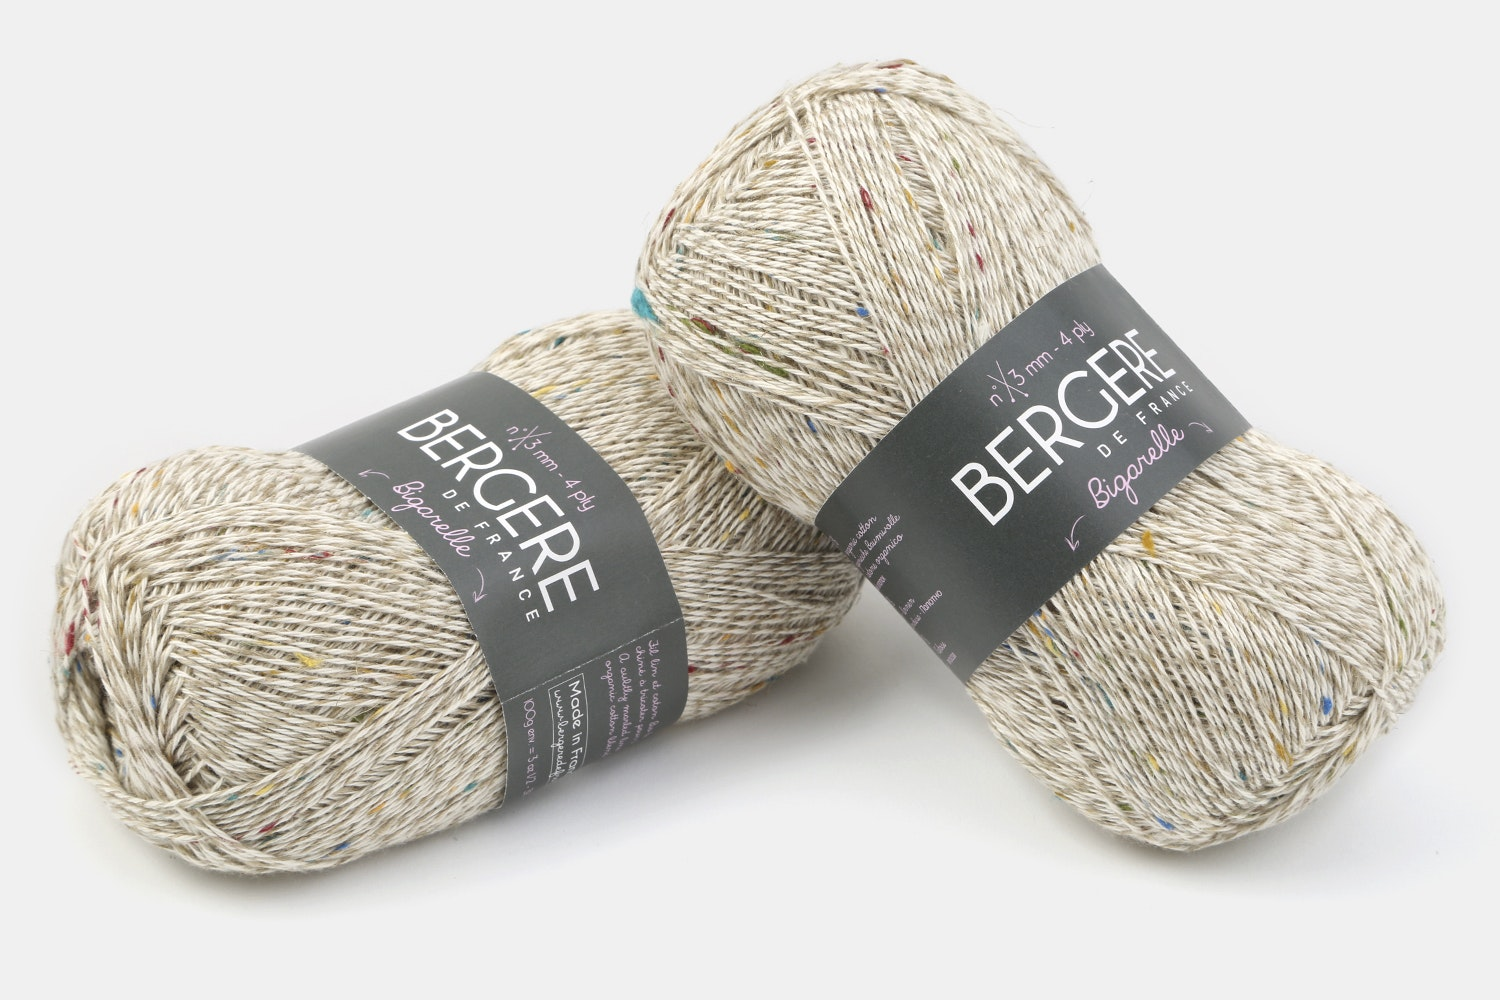 Bigarelle Yarn by Bergere De France (2-Pack)